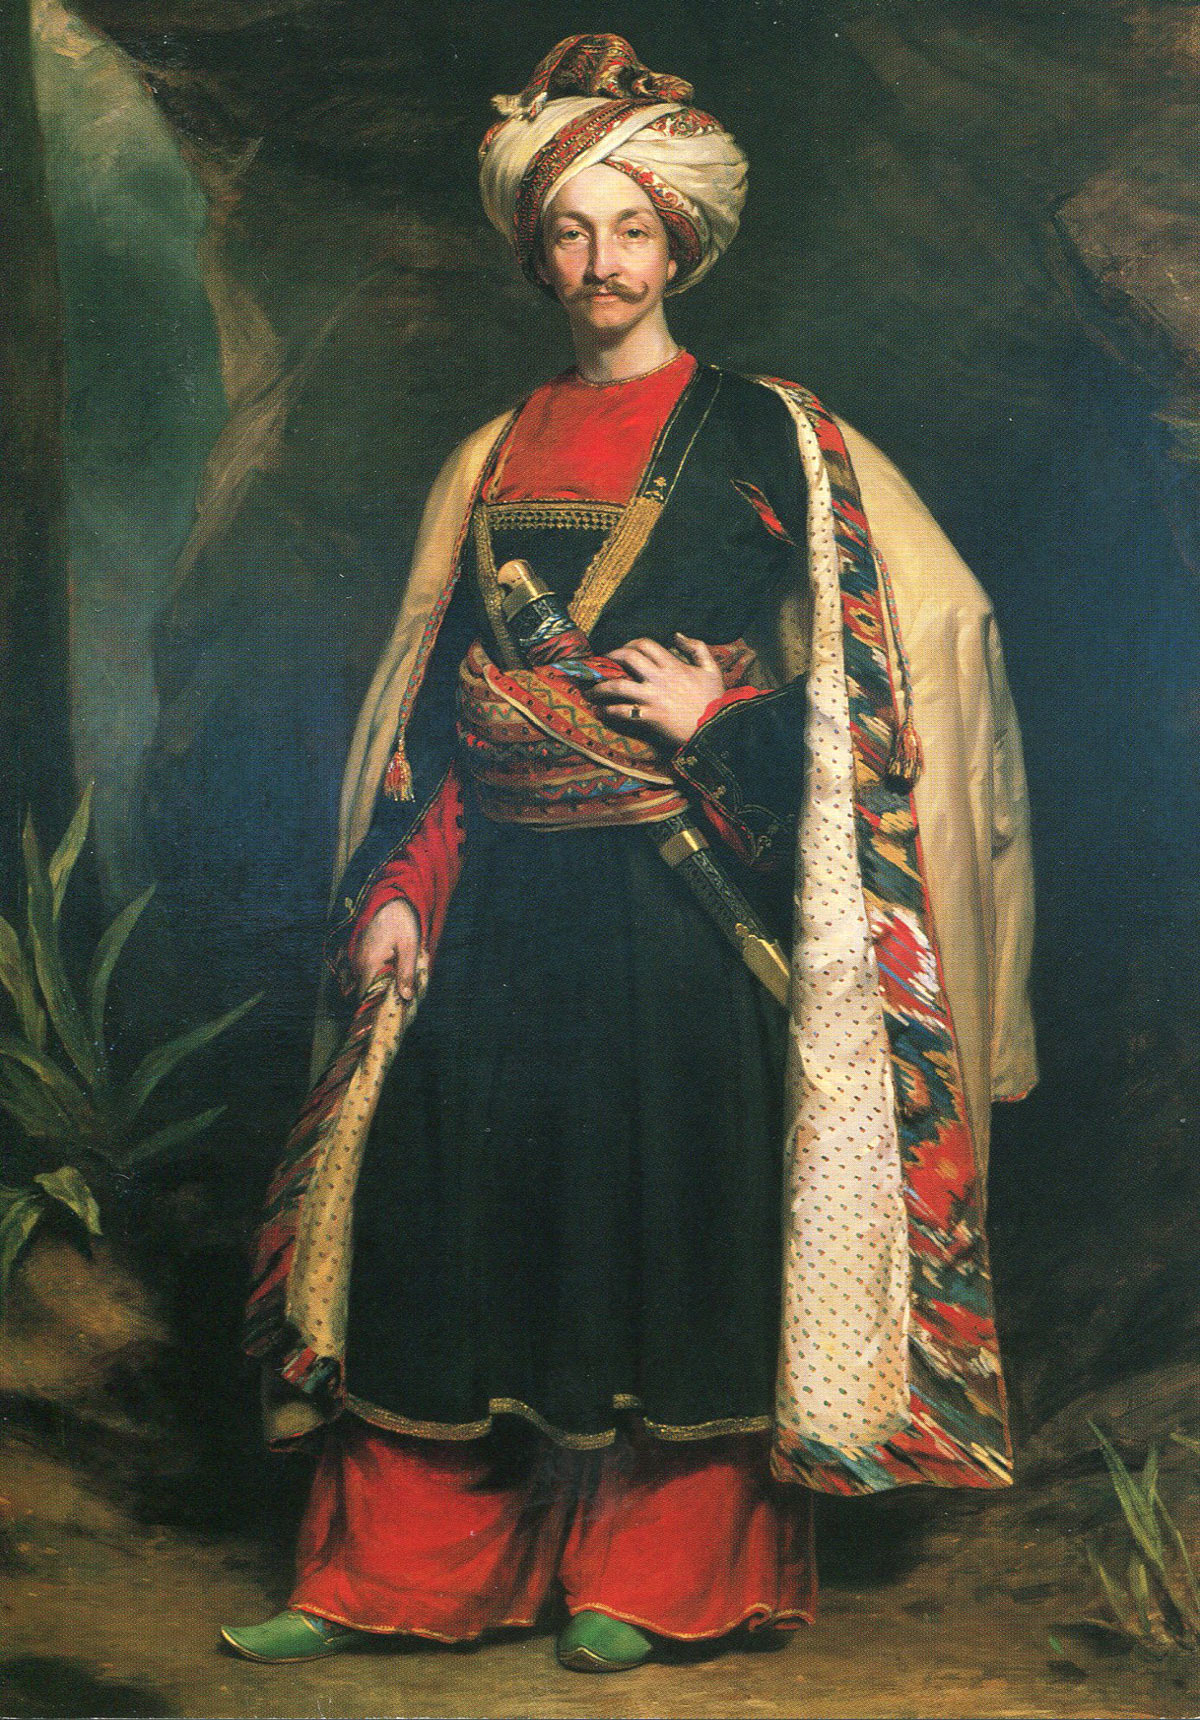 Captain Colin Mackenzie of the Madras Army in the Afghan costume he adopted to escape from captivity: Battle of Kabul 1842 in the First Afghan War